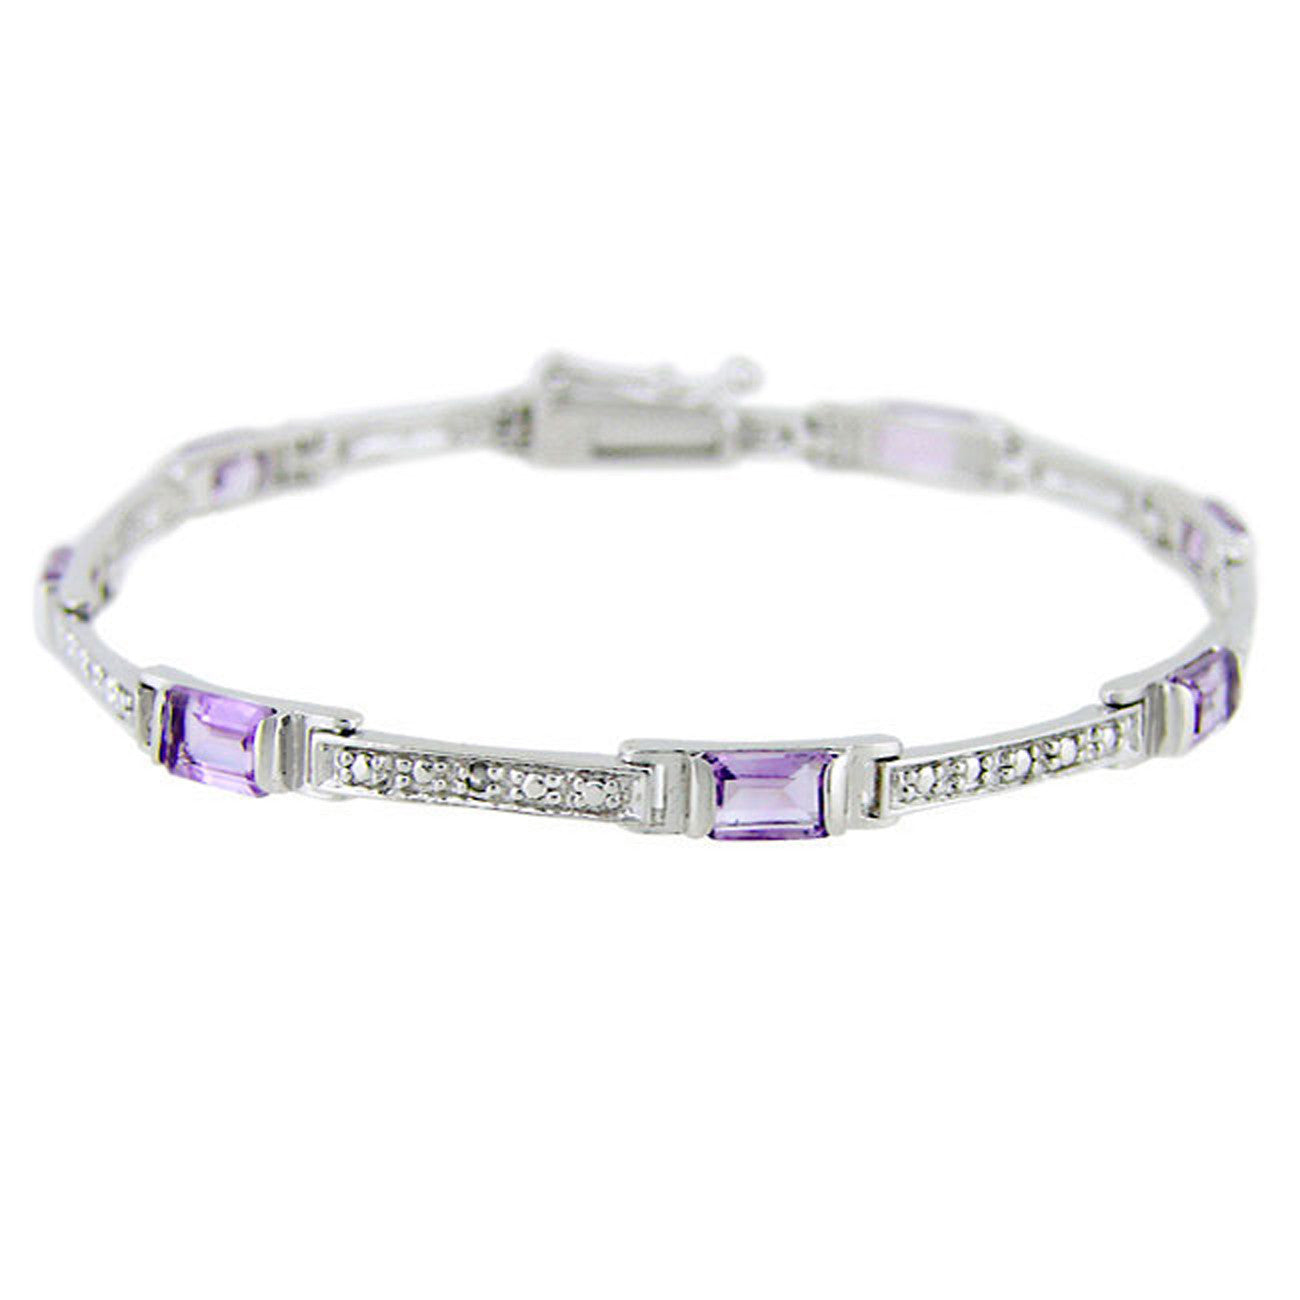 Diamond & Gemstone Accented Bracelet in Sterling Silver - Amethyst